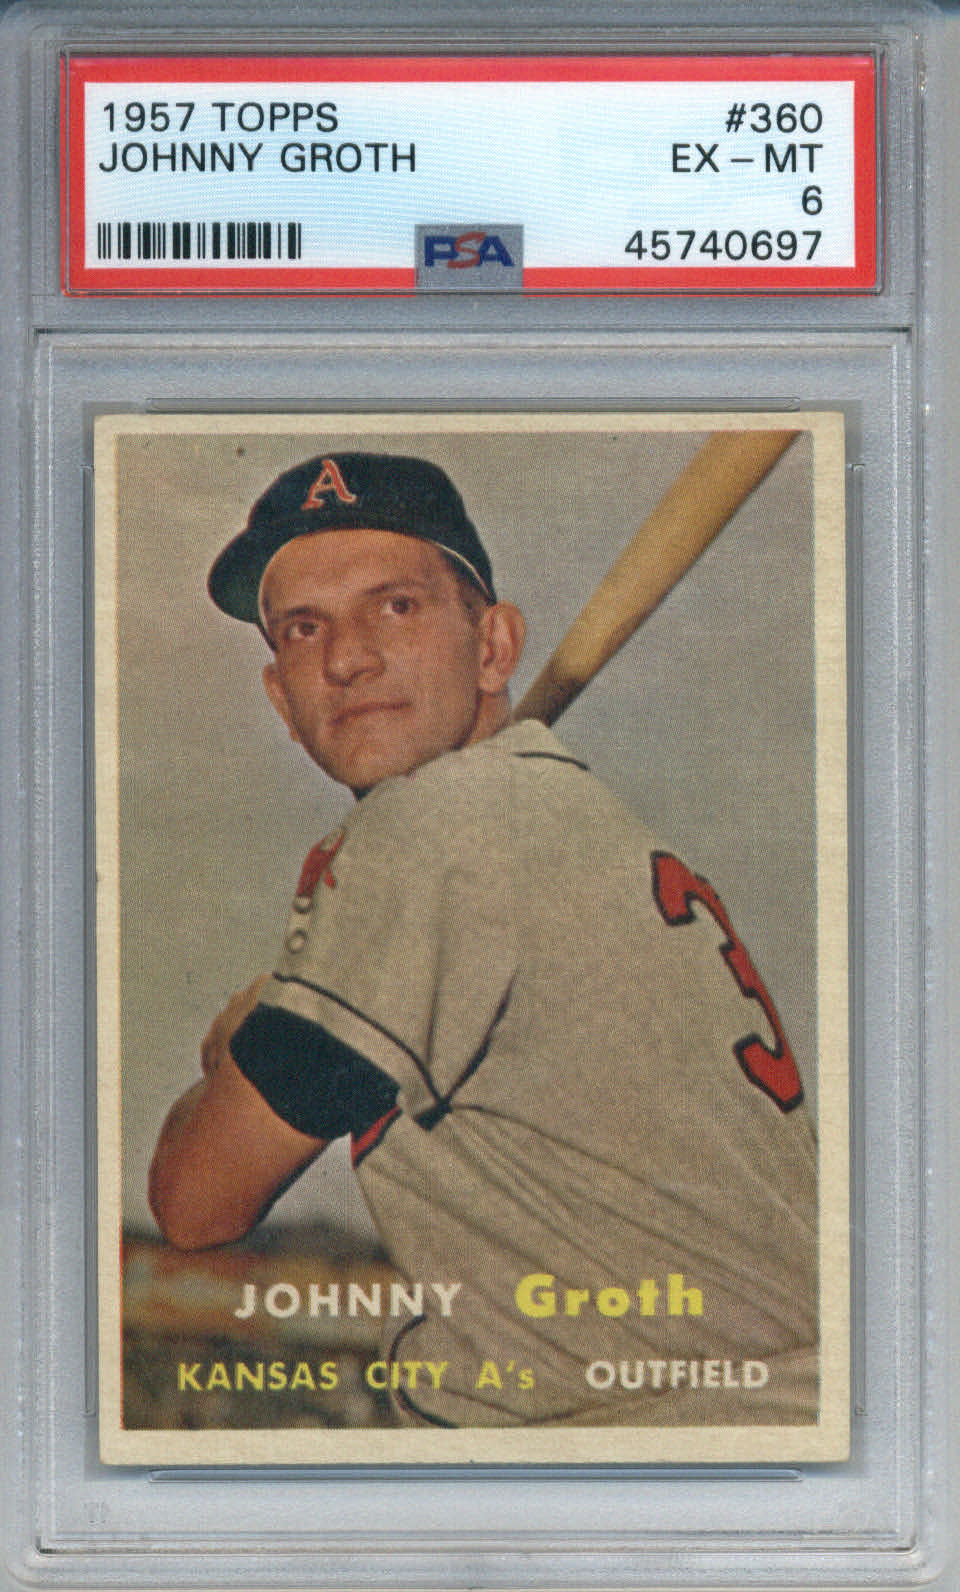 1957 Topps #360 Johnny Groth PSA 6